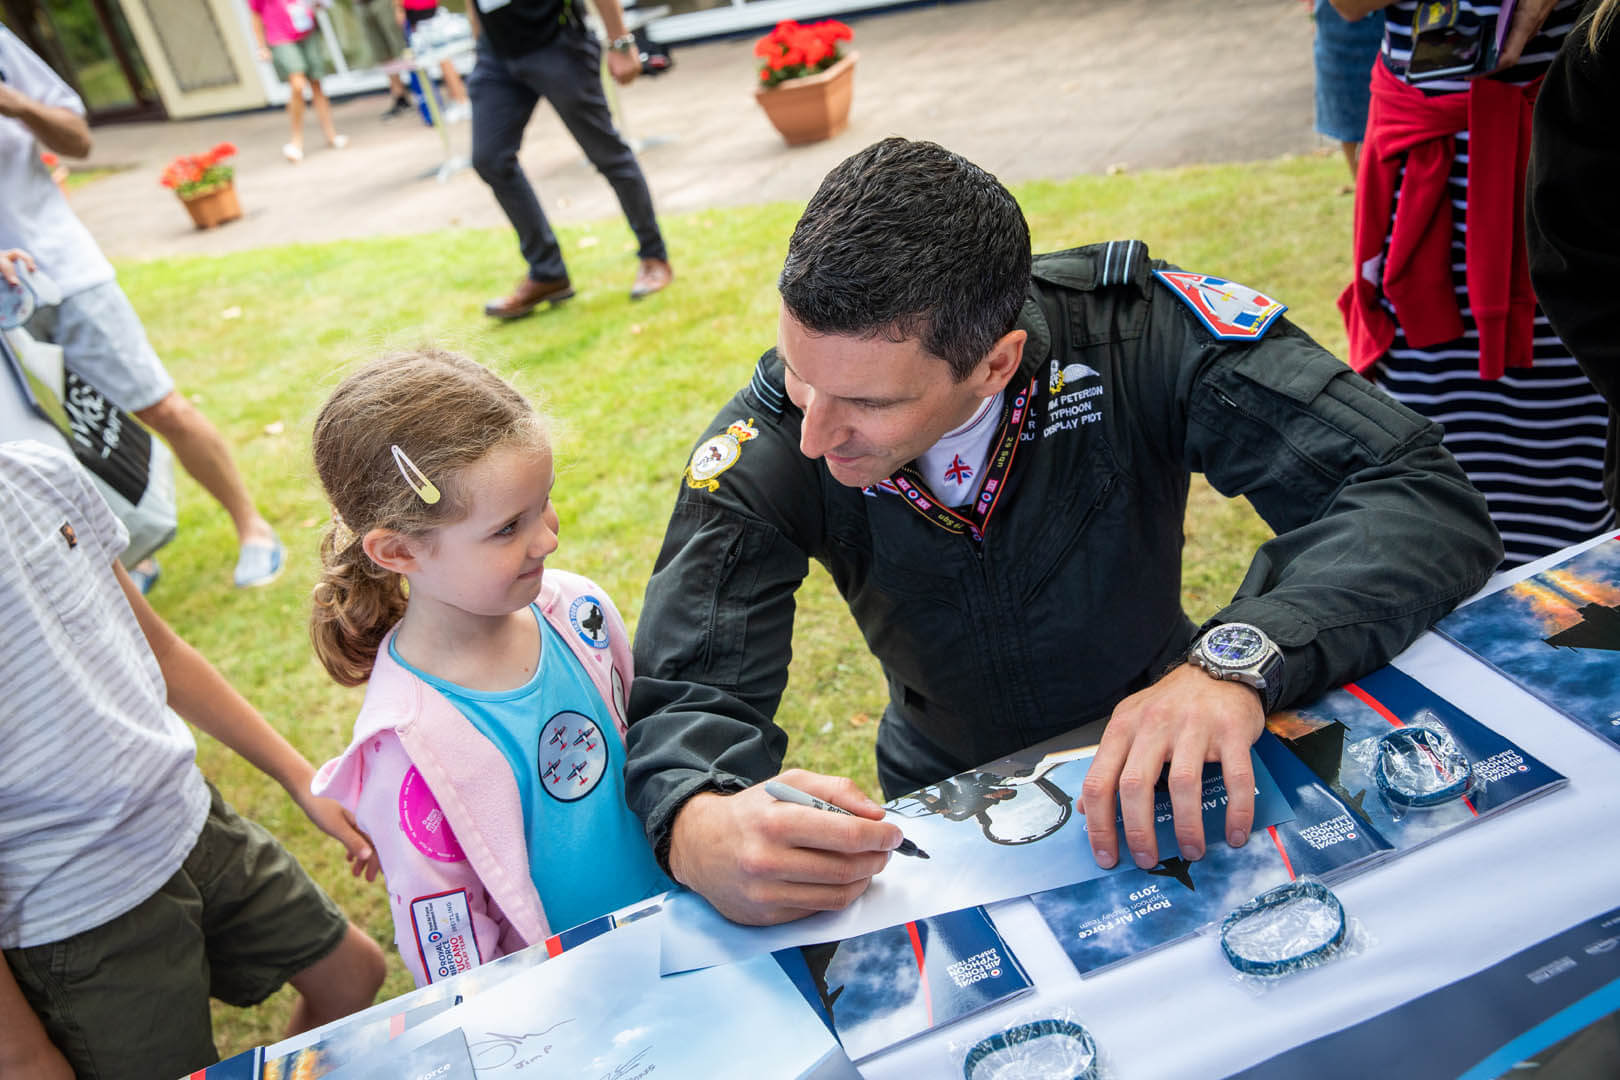 The Typhoon pilot signing a poster for a young child at the meet and greet